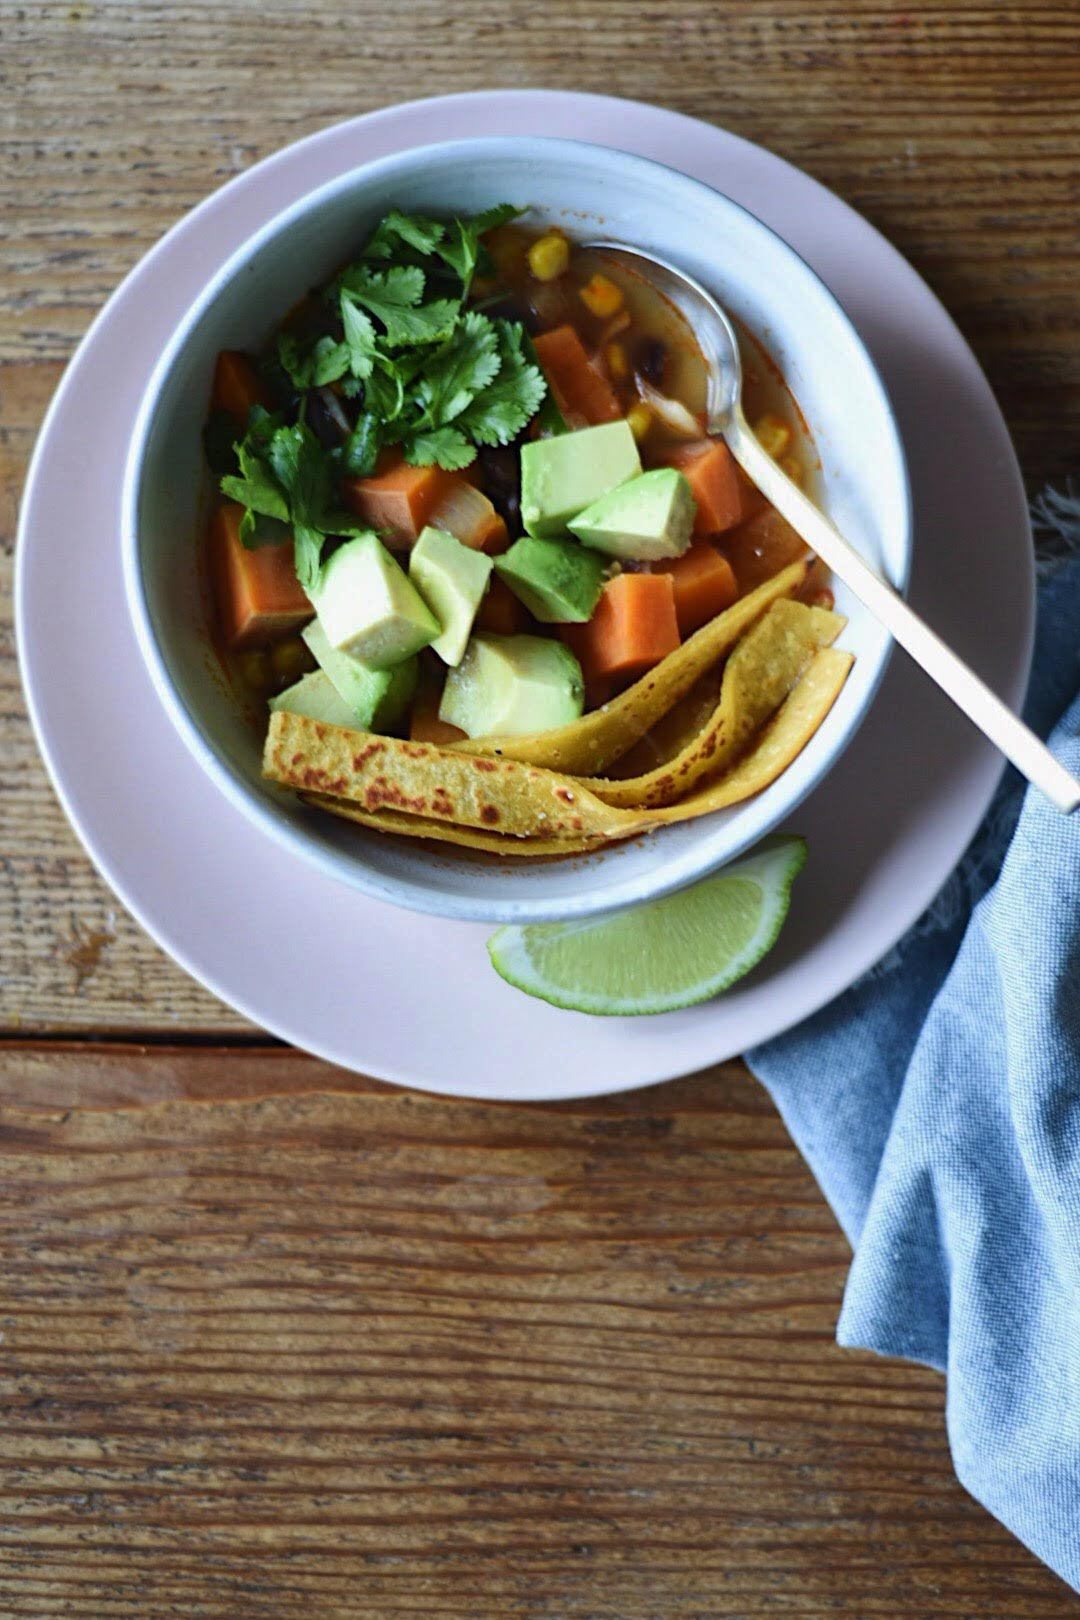 Chipotle Tortilla Soup Recipe from The Minimalist Kitchen